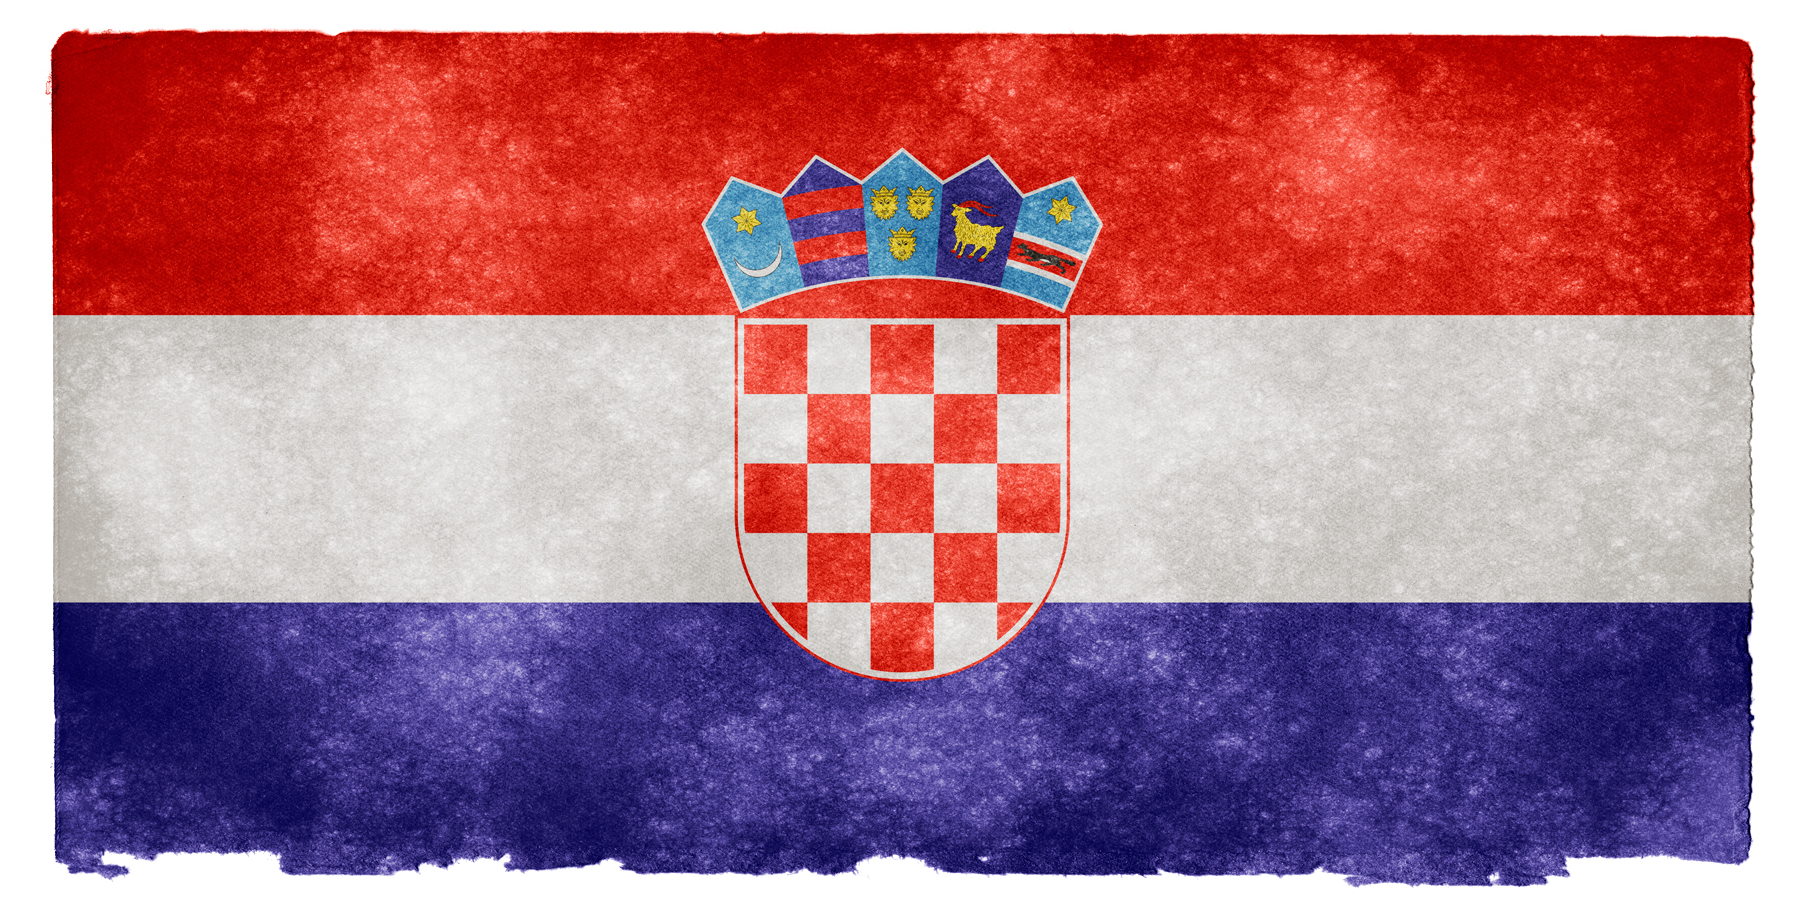 Croatia Grunge Flag, Aged, Retro, Old, Page, HQ Photo